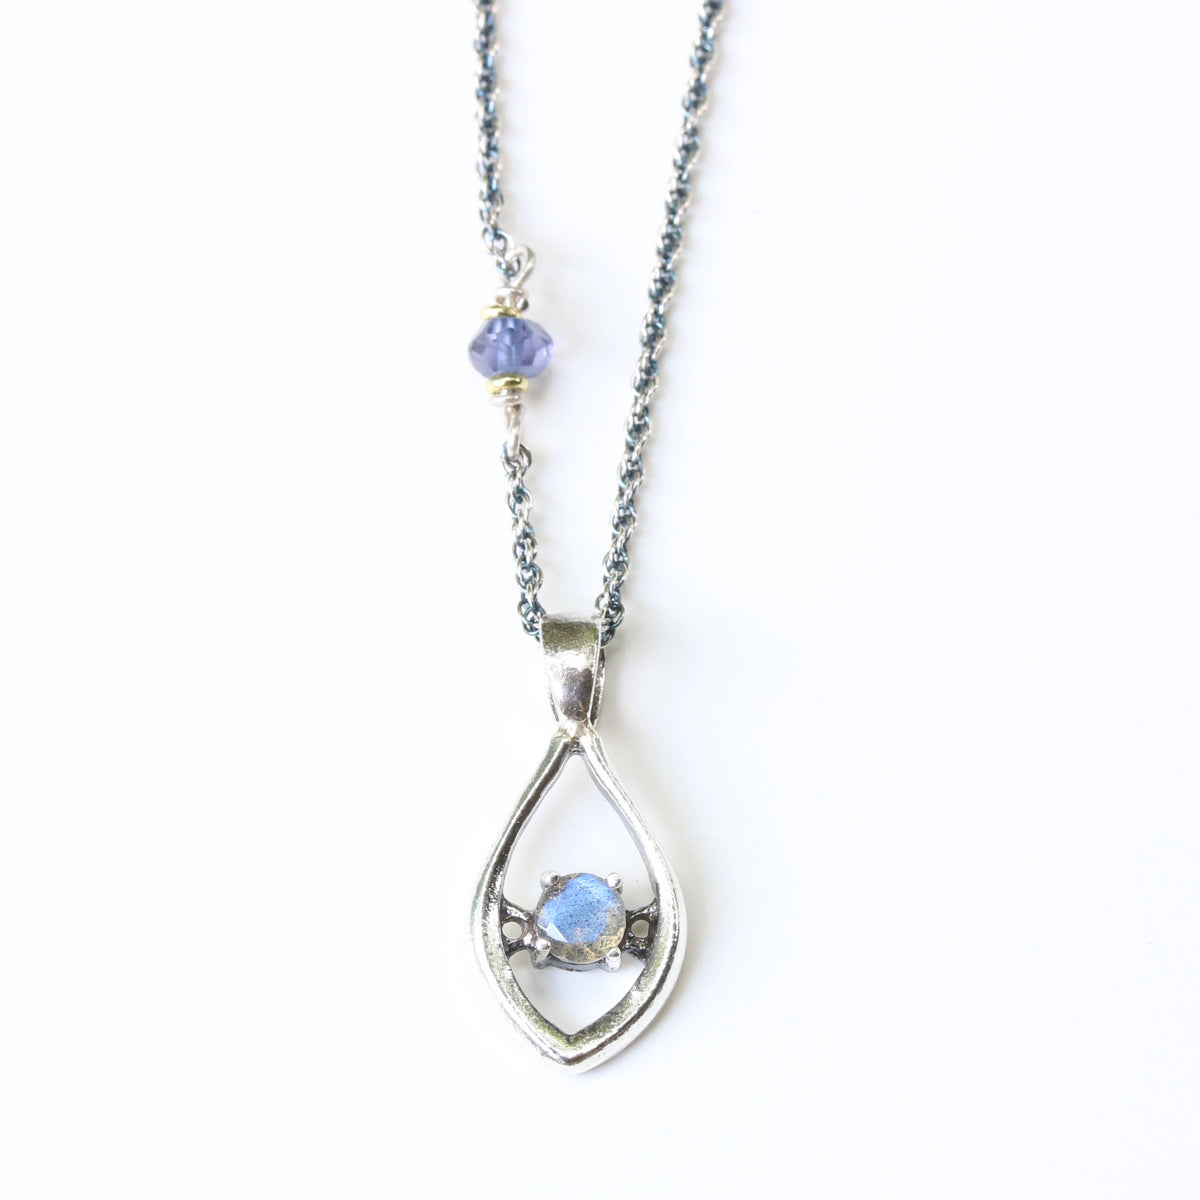 Silver leaf shape necklace and labradorite at the center with iolite beads secondary on oxidized sterling silver chain